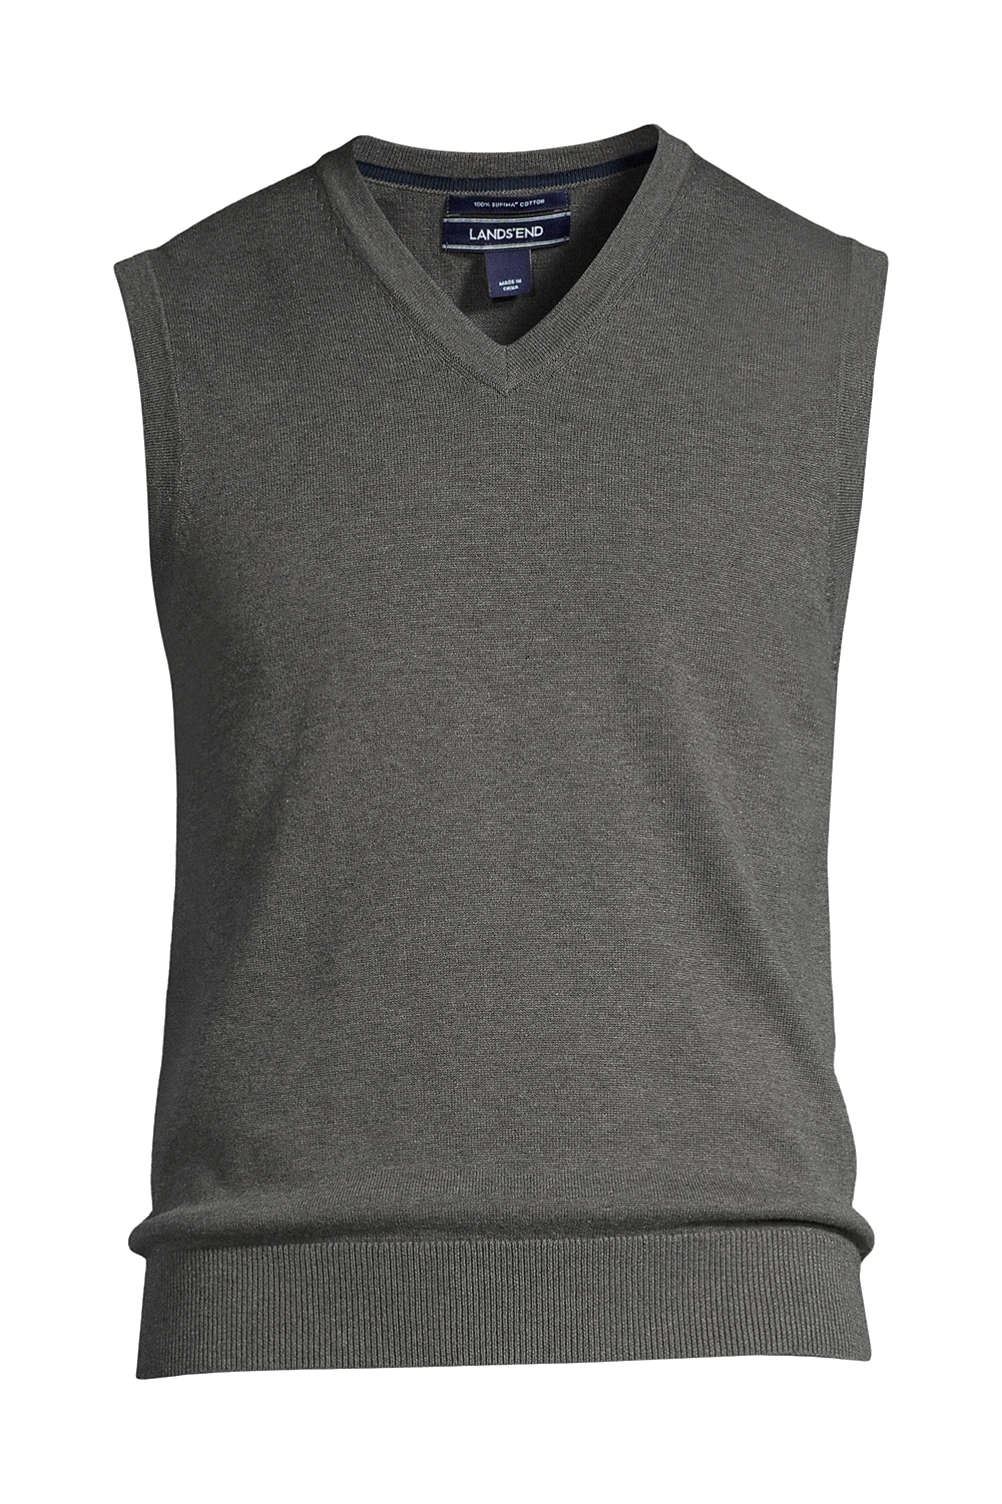 6664fb4bbf73 Men's Supima Cotton Sweater Vest from Lands' End